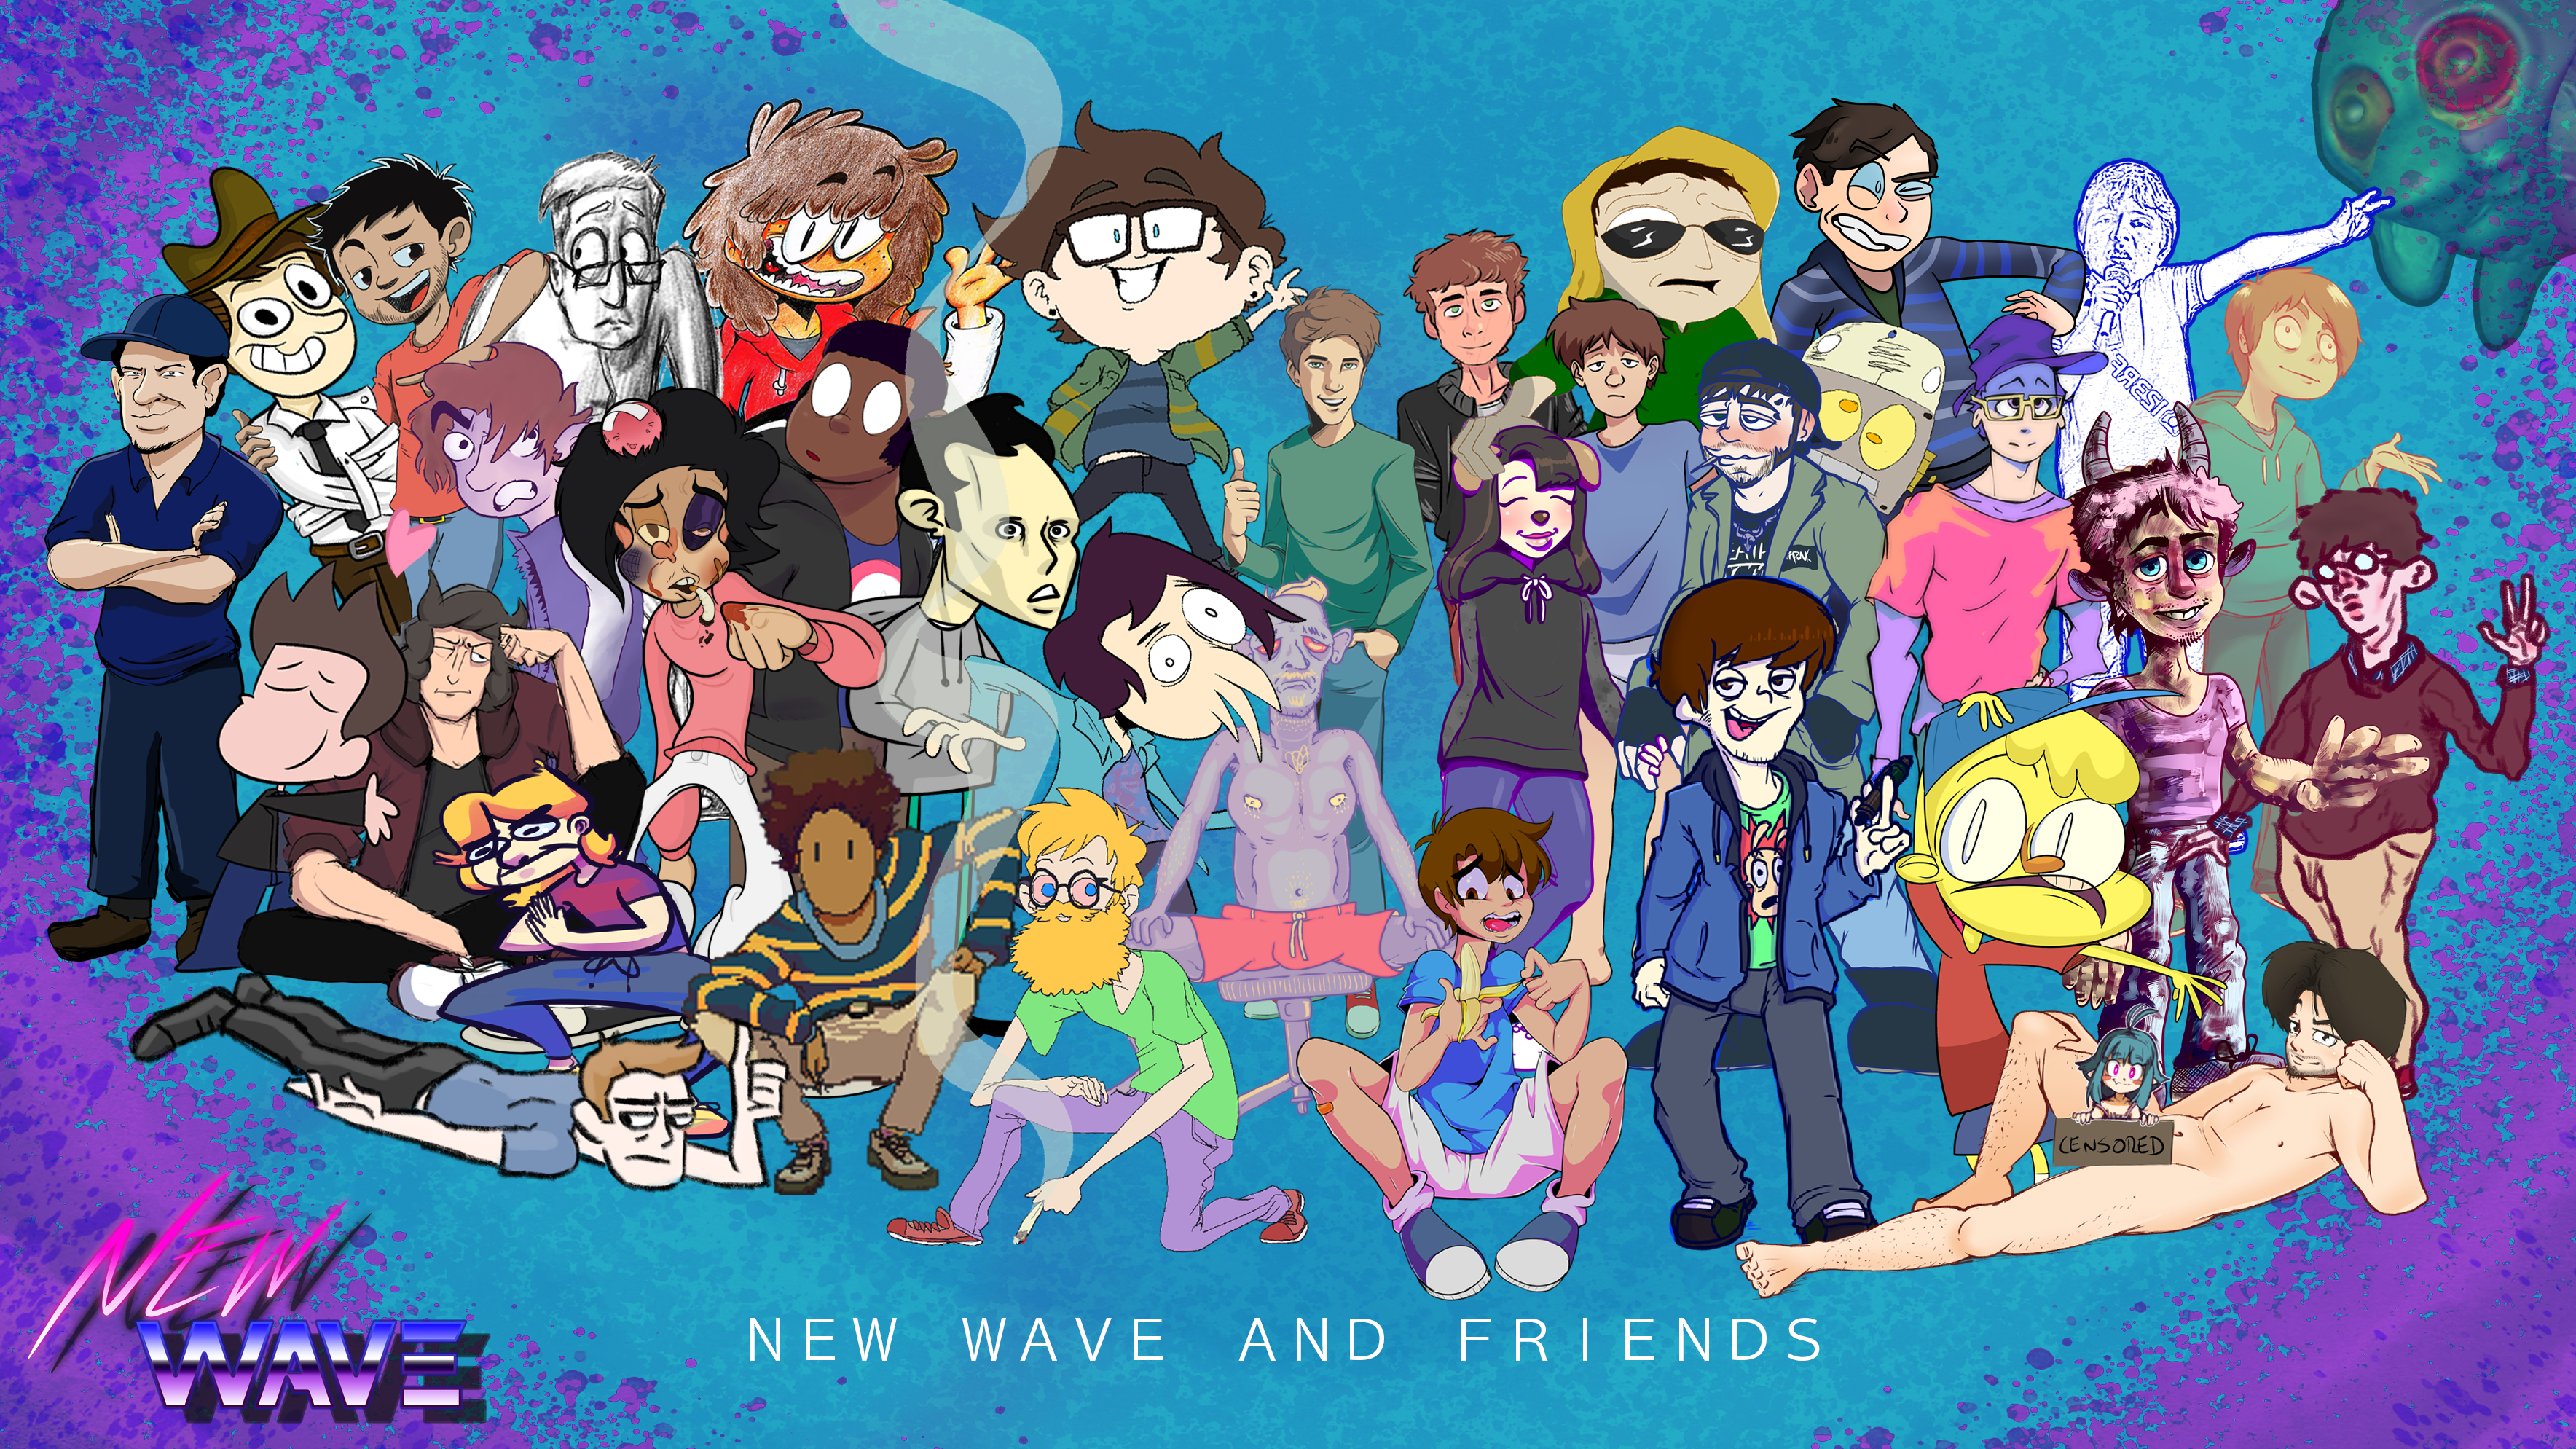 New Wave and Friends